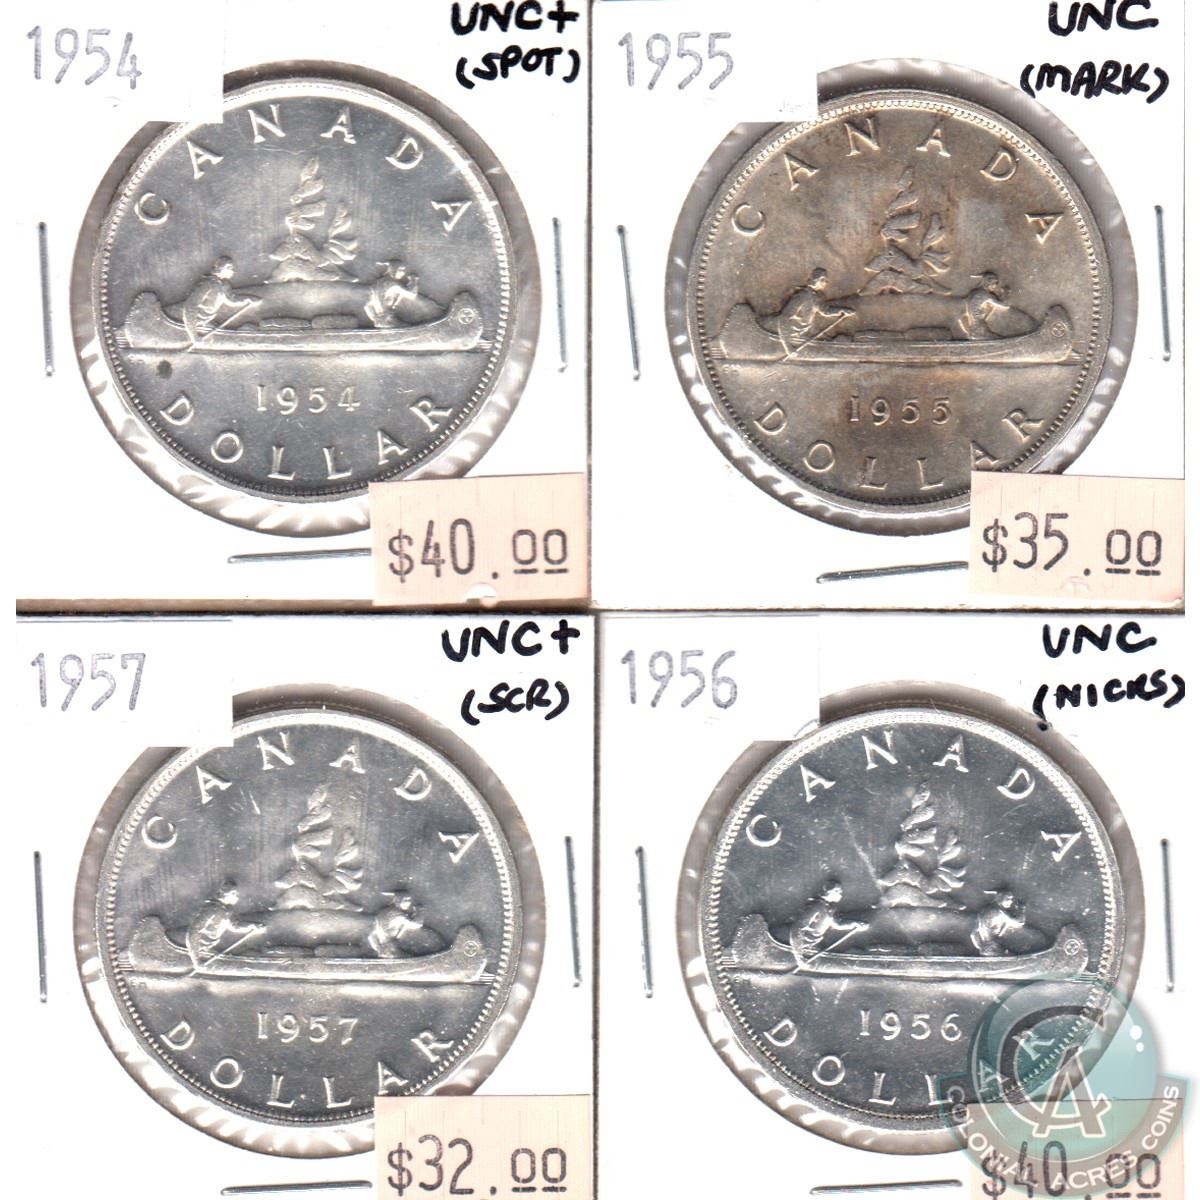 1954, 1955, 1956 & 1957 Silver Dollar UNC (coins have Various minor ...